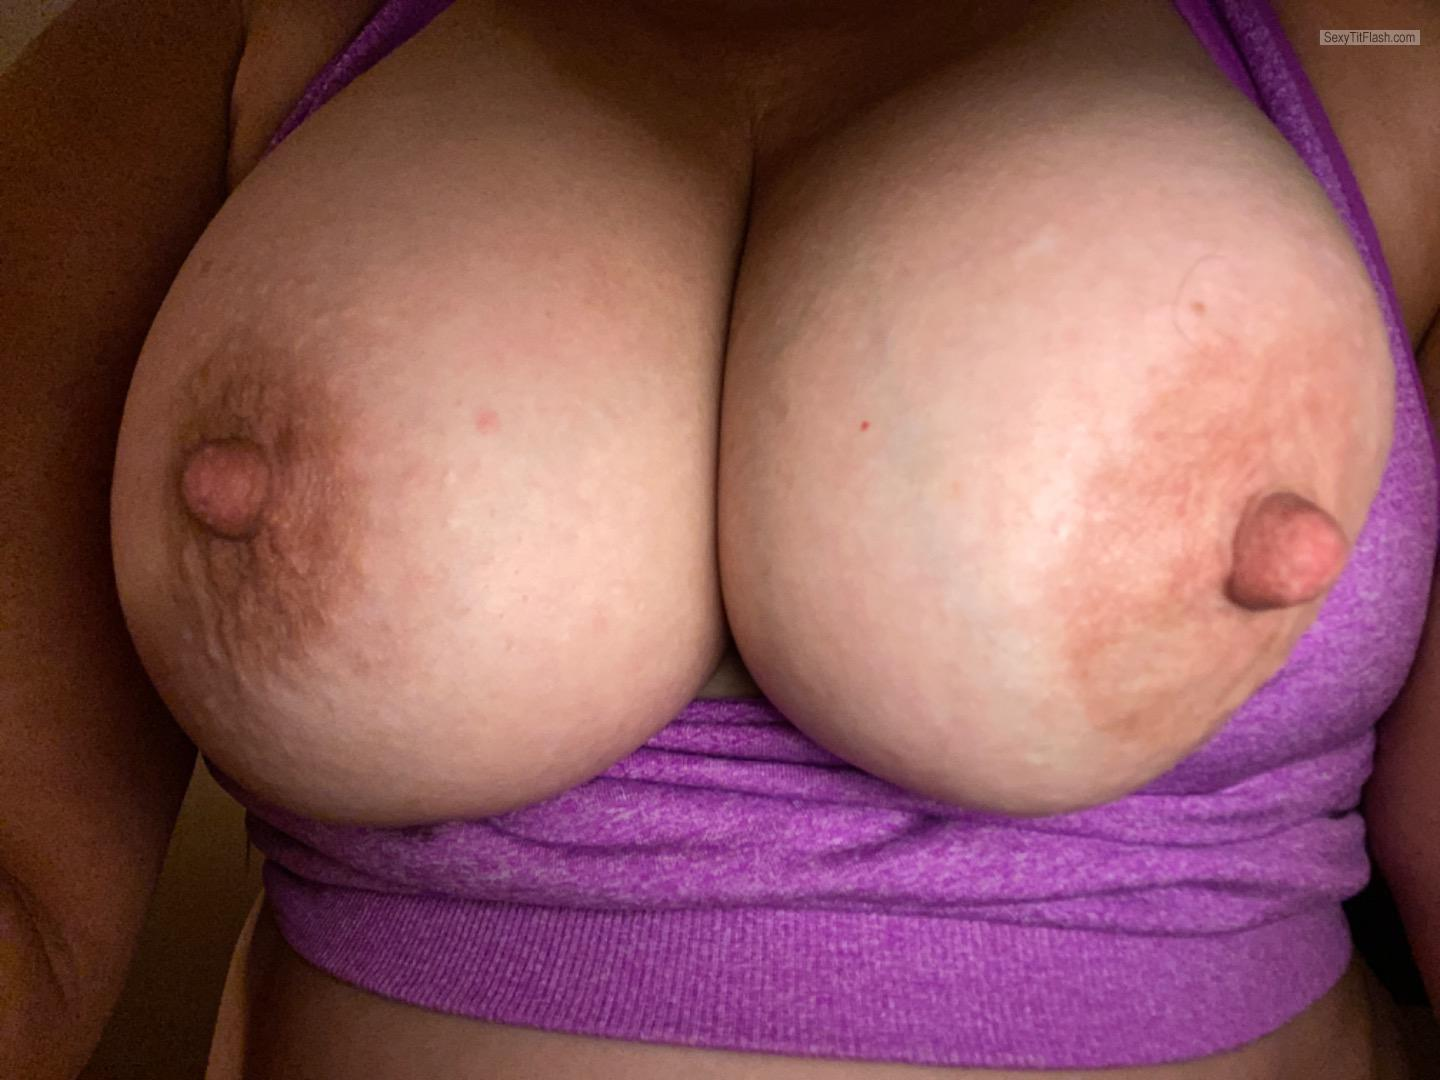 Tit Flash: My Very Small Tits (Selfie) - Hotoldie from United States